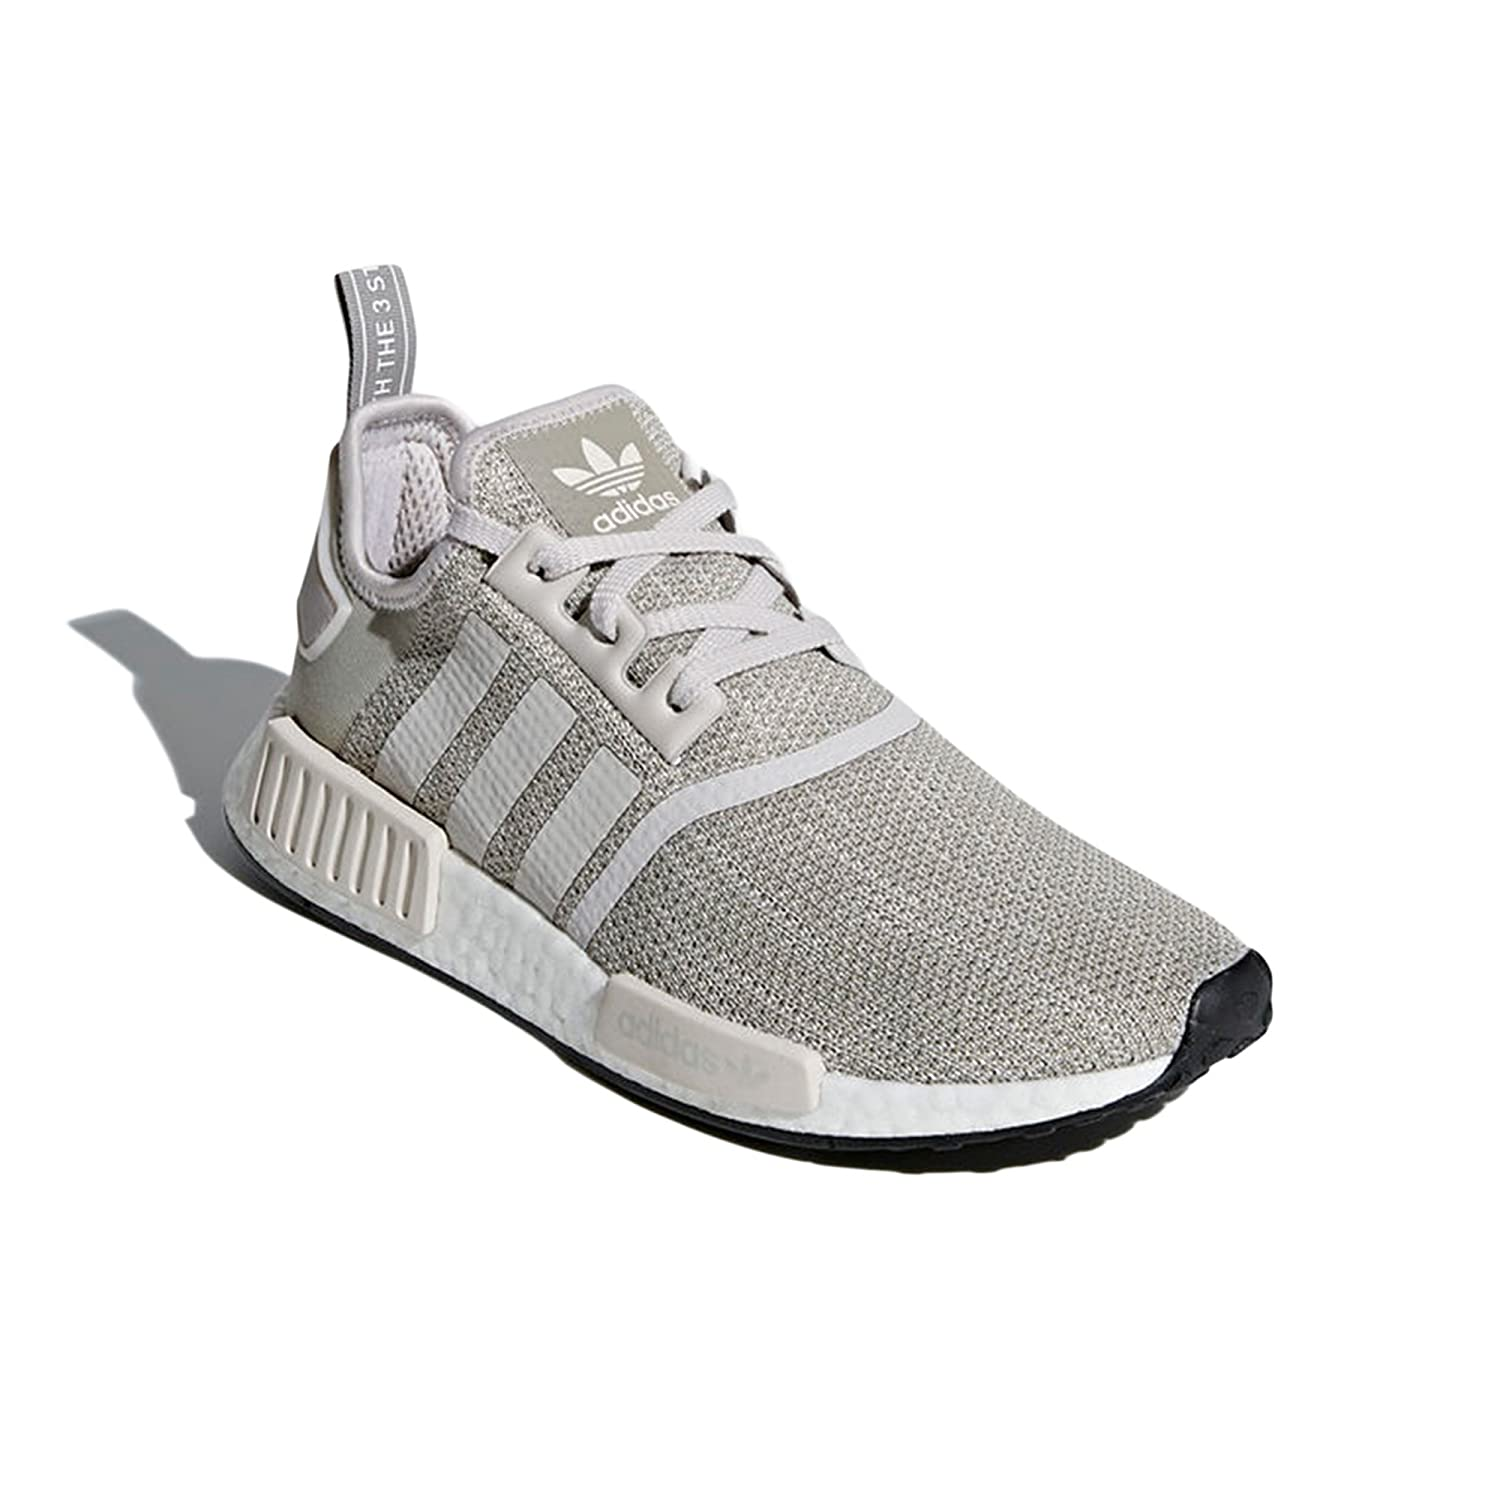 adidas NMD_ R1 BY9951, B79758 Chaussures Homme Noir Sneaker tecnologia Boost, Low-Top (43 1/3 EU, White/Grey Two/Ftwr White)